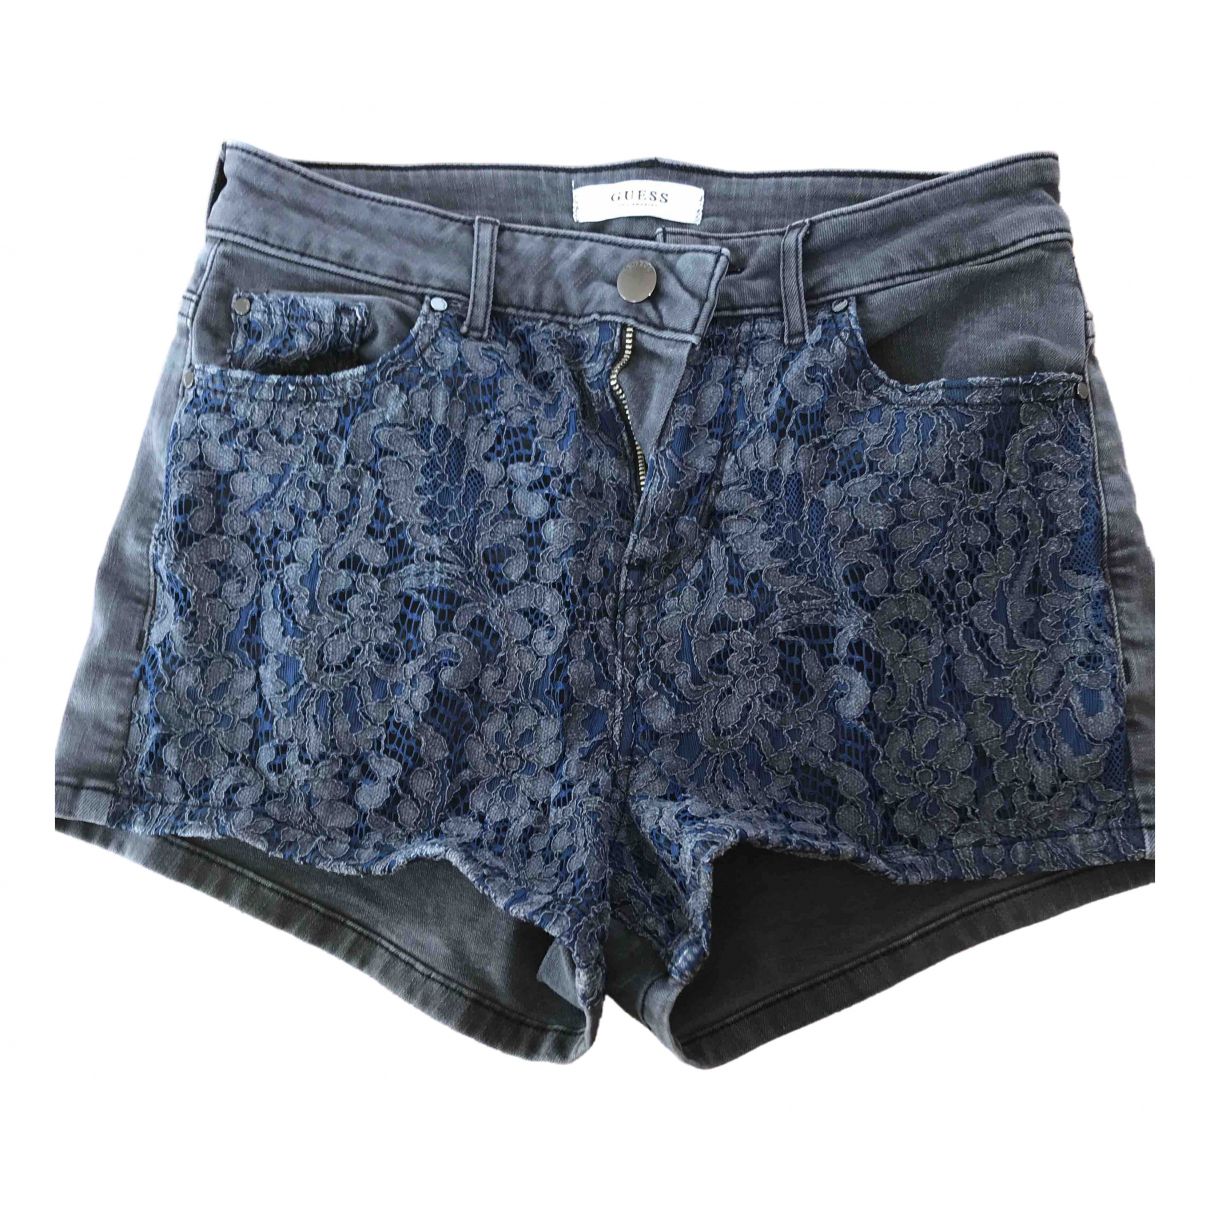 Guess \N Anthracite Denim - Jeans Shorts for Women 36 FR